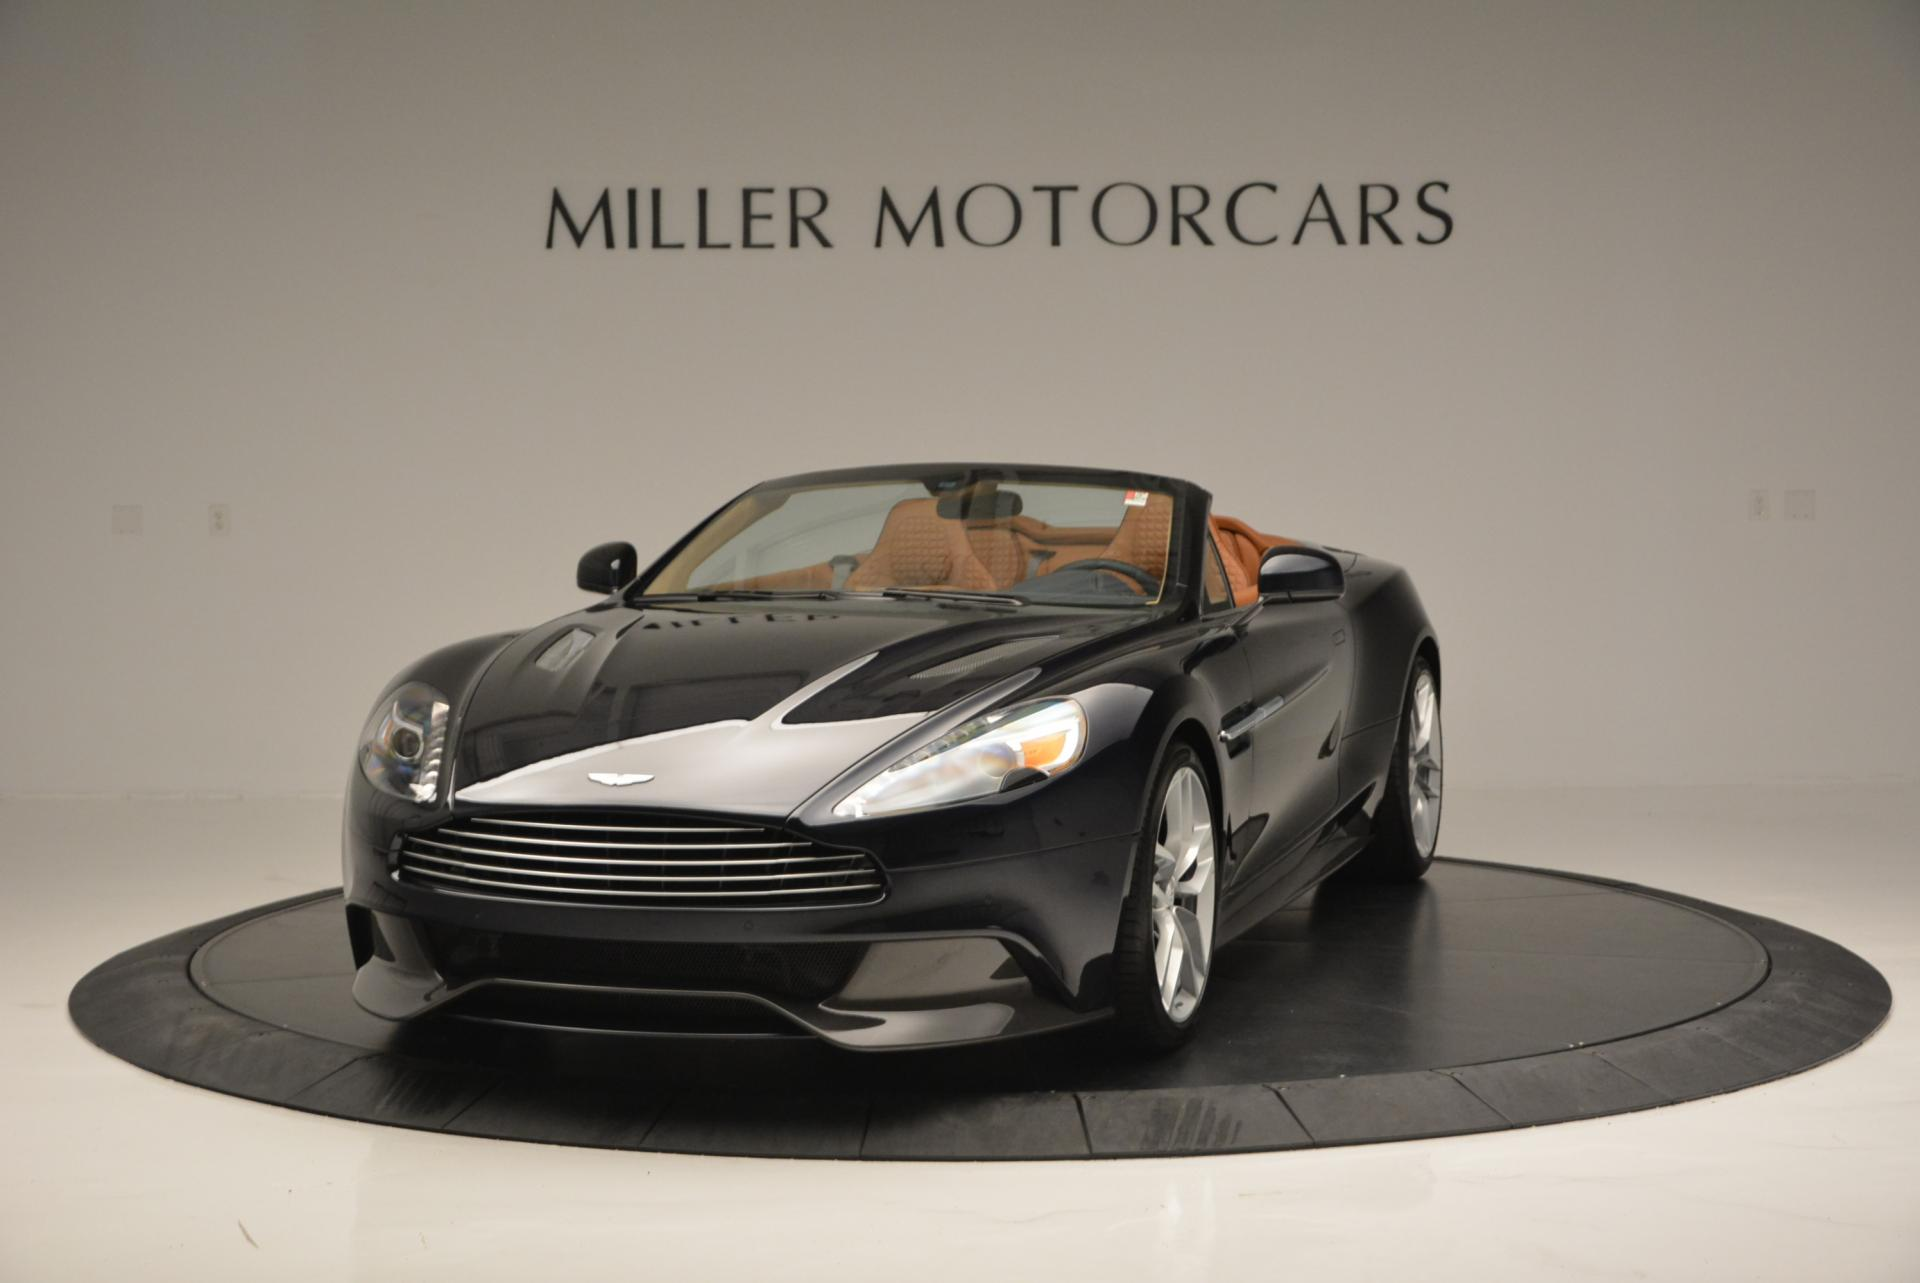 New 2016 Aston Martin Vanquish Volante For Sale In Westport, CT 86_main